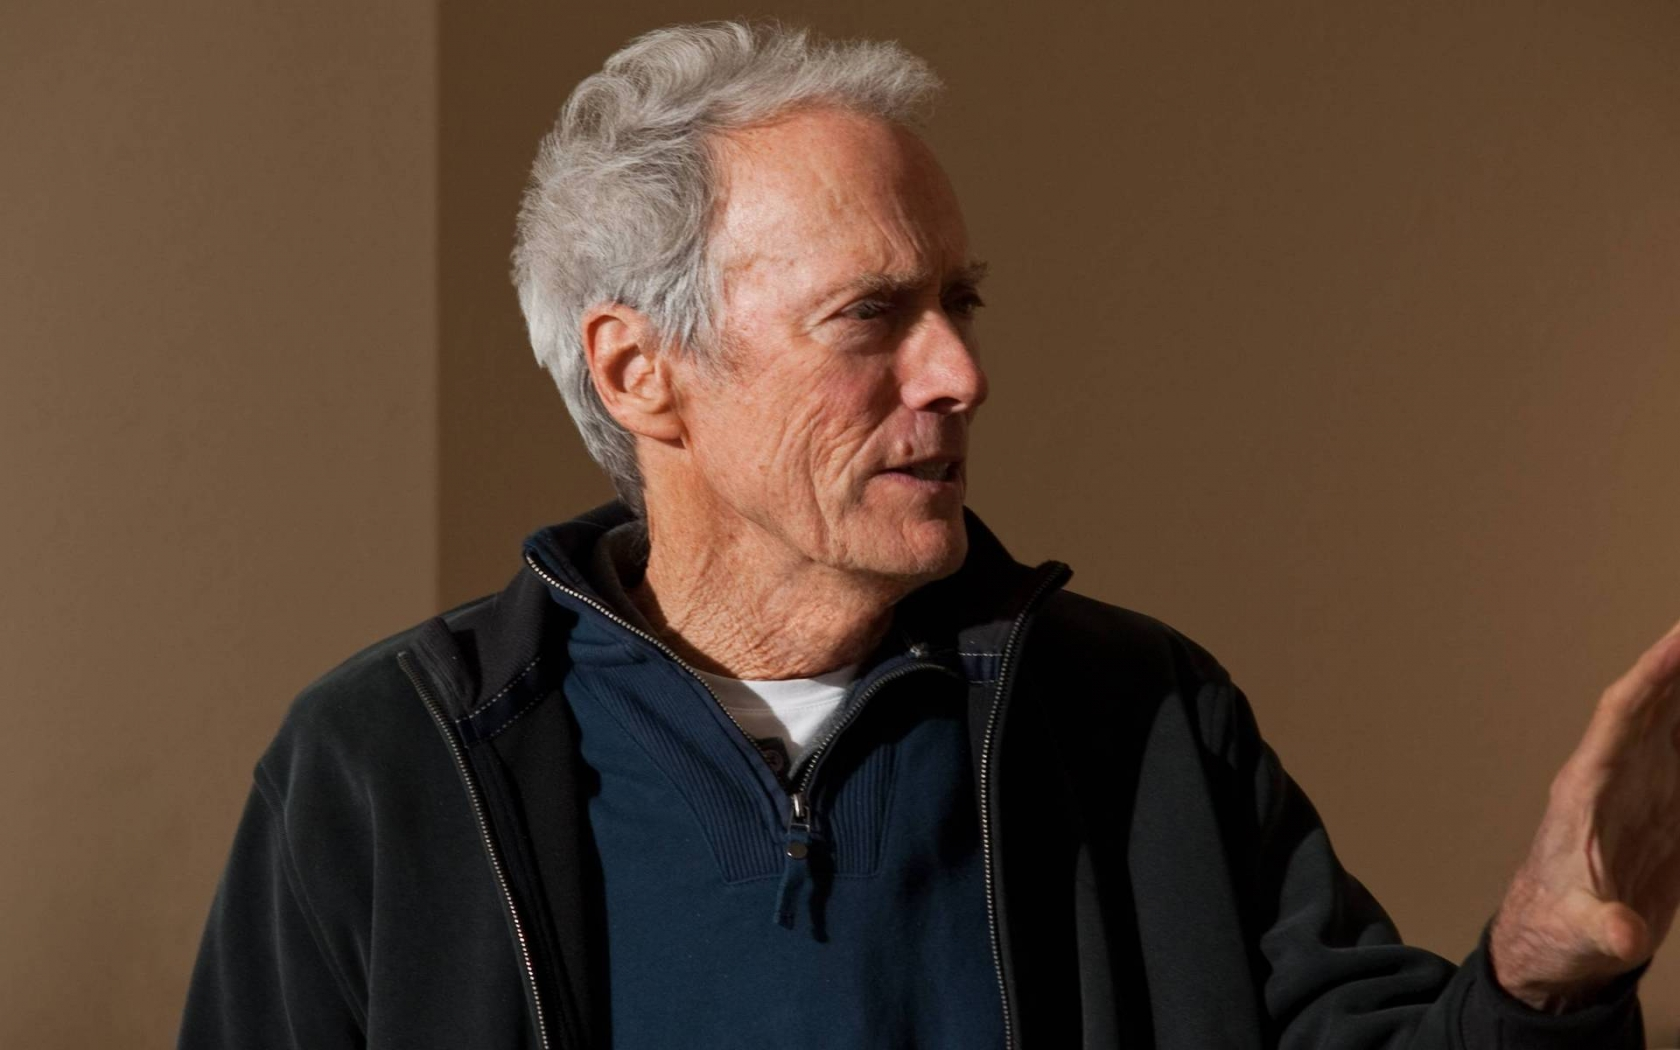 Clint Eastwood Close-Up for 1680 x 1050 widescreen resolution